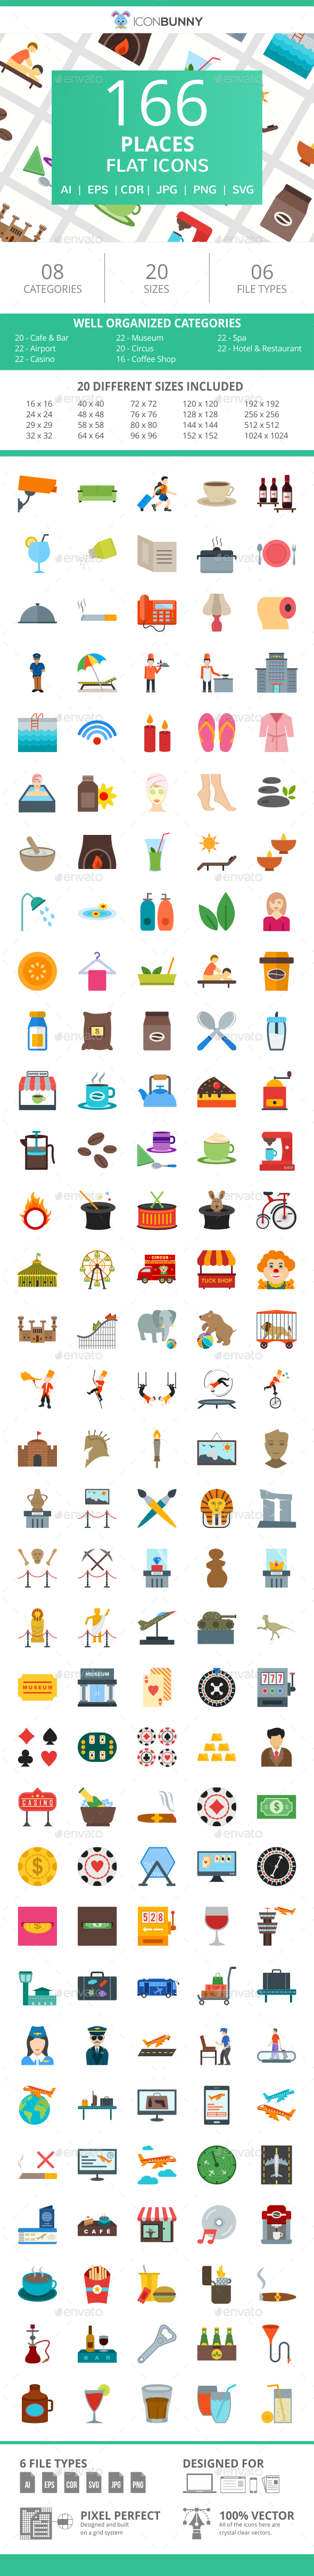 166 Places Flat Icons - Icons